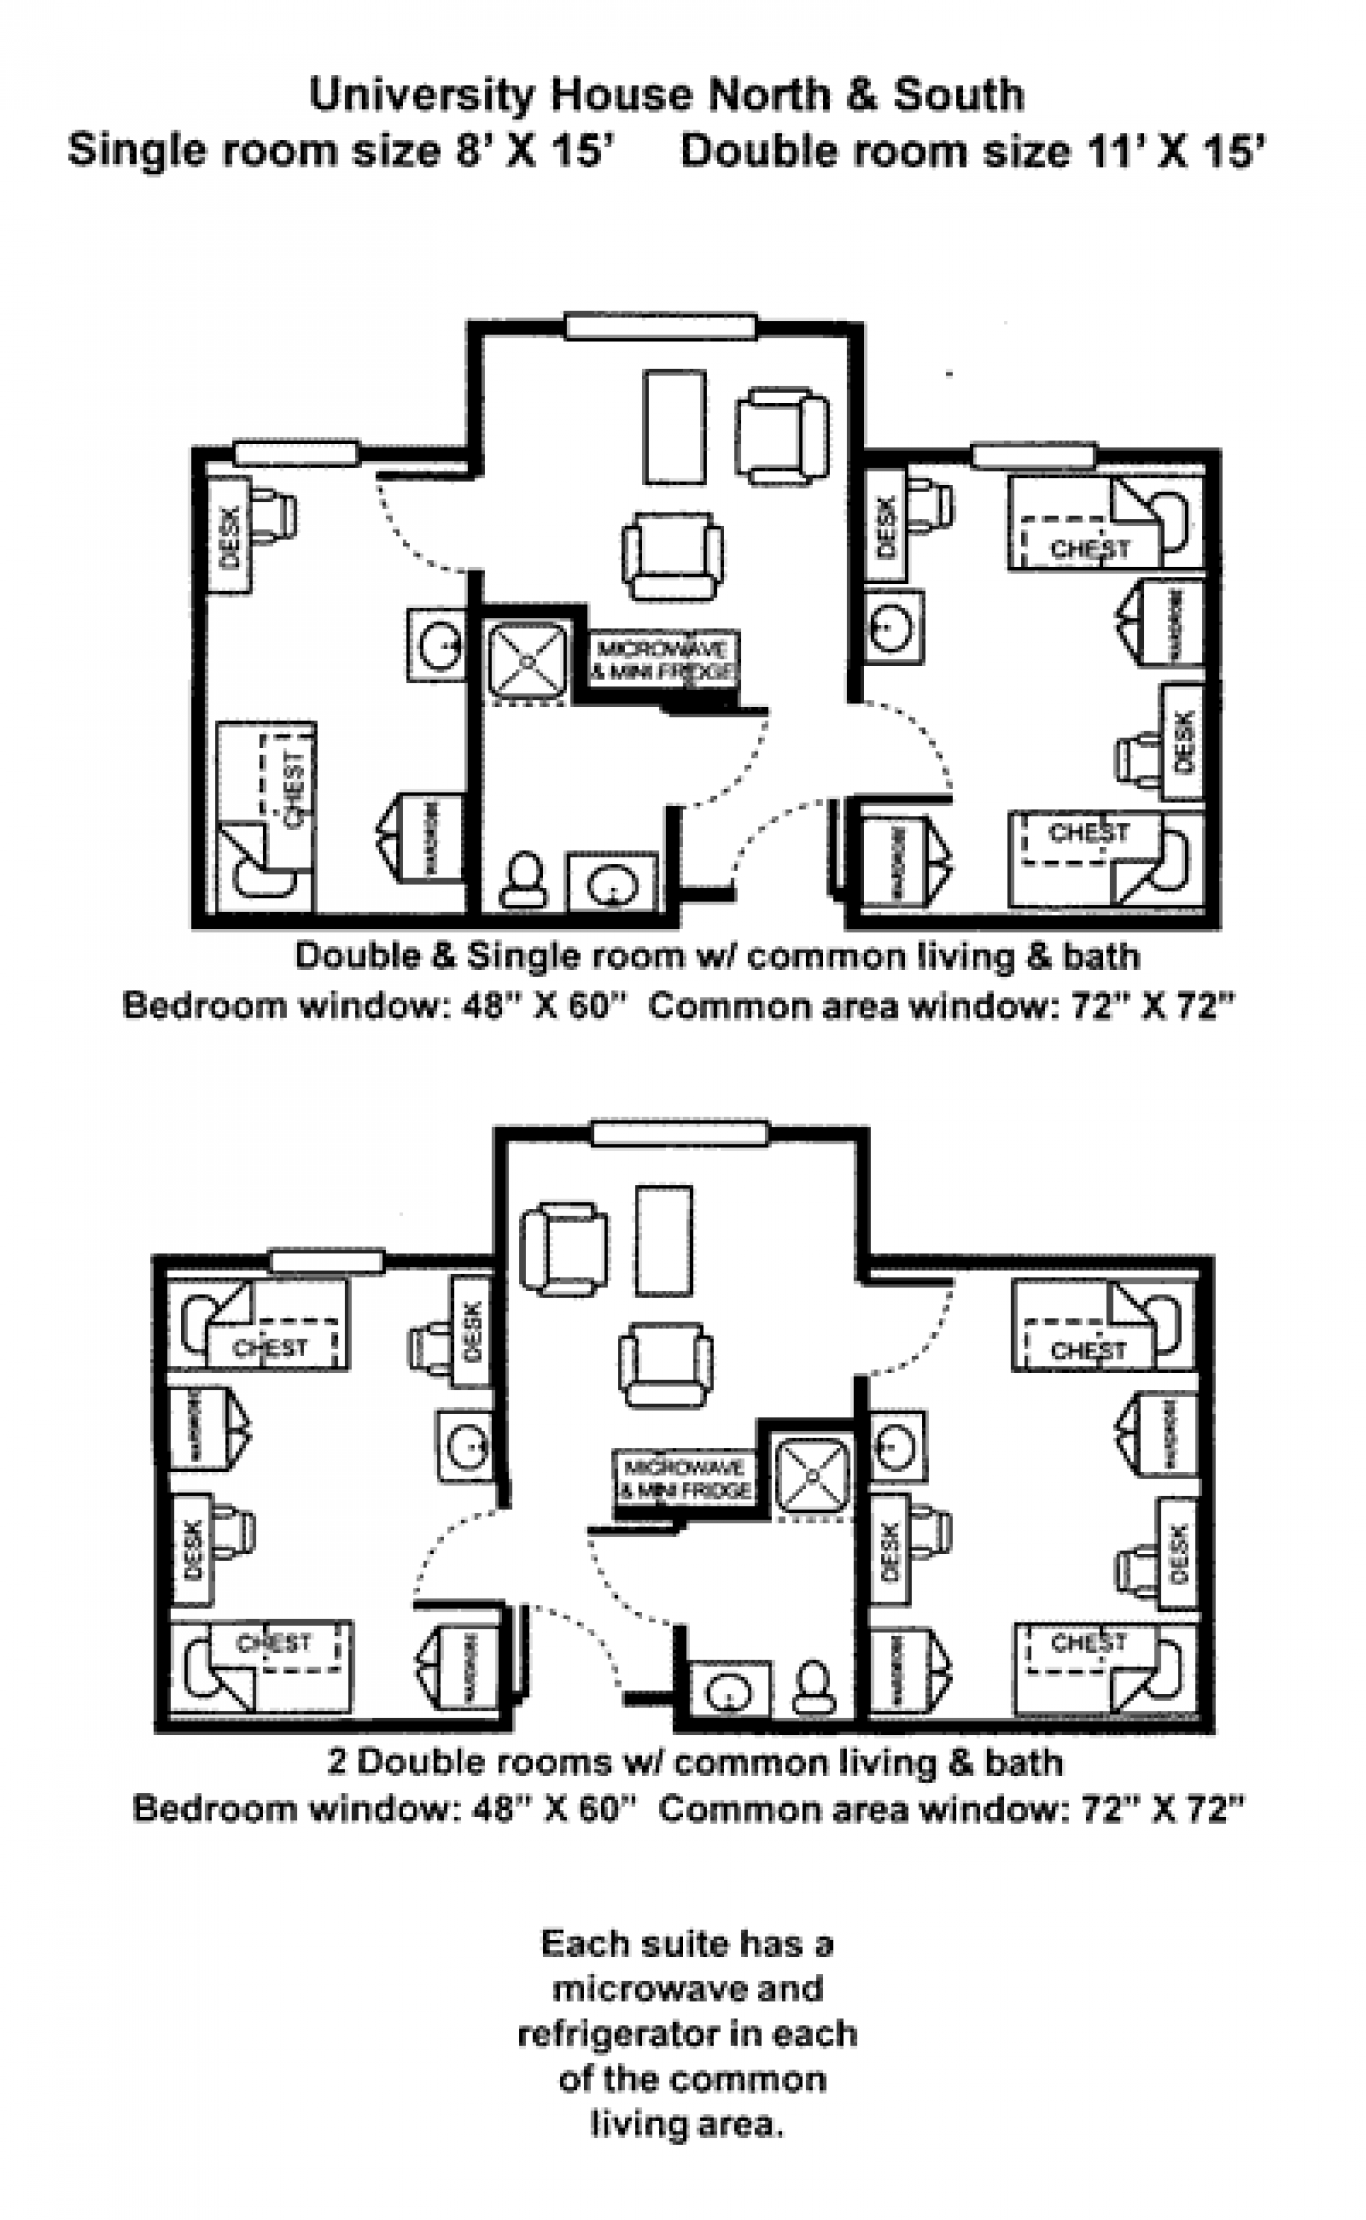 U House floorplan